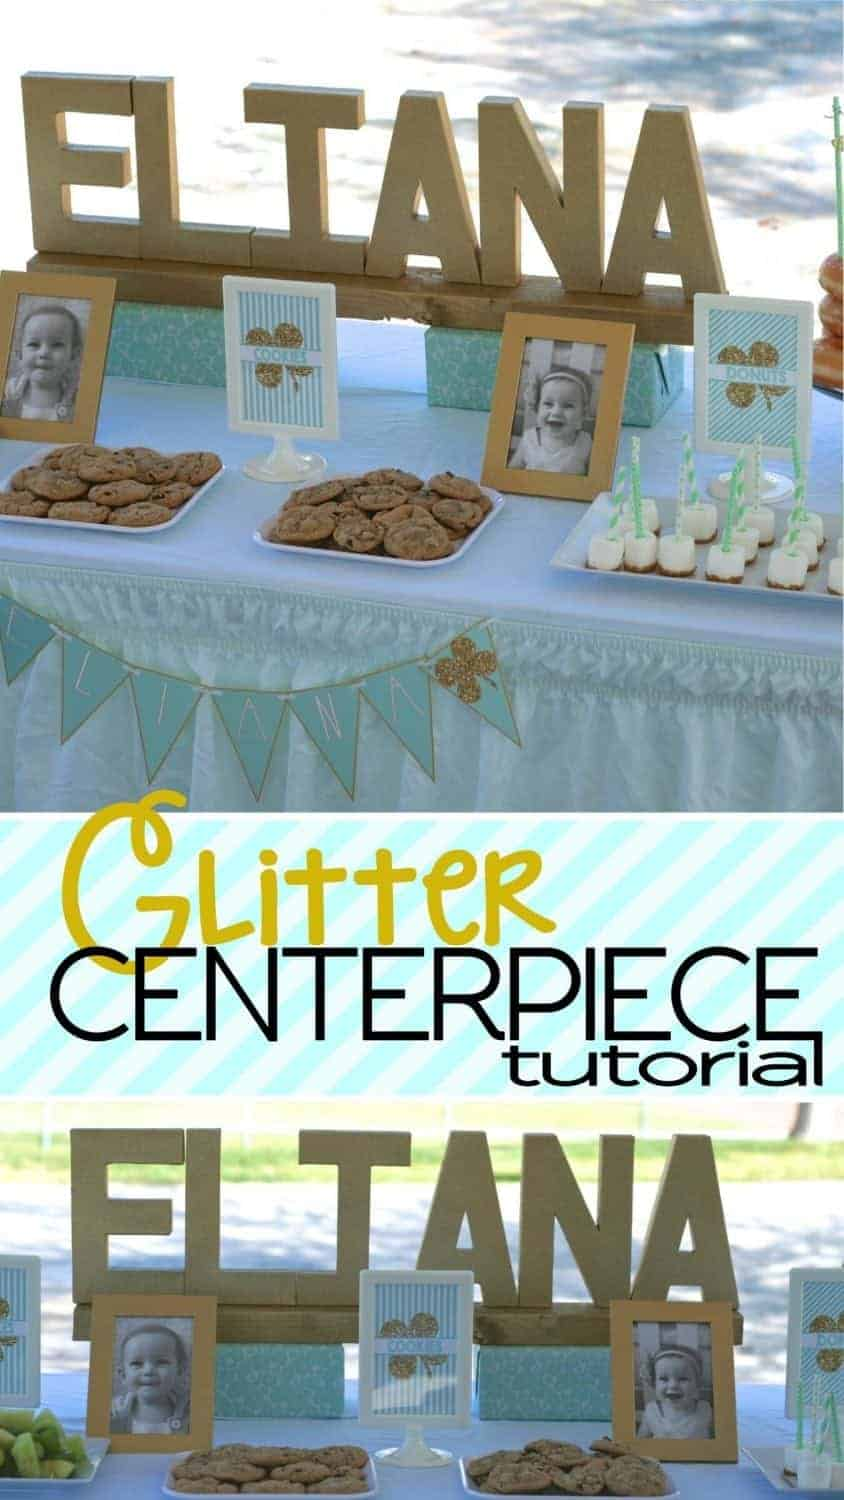 Mint Shamrock Party: Glitter Name Centerpiece Tutorial. Today I'm sharing a tutorial on how to make the easy peasy glitter name centerpiece from my Mint Shamrock Party. Be sure to check out all of our St. Patrick's Day ideas and inspiration. #craft #tutorial #diy #holiday #party #parties #partyideas #glitter